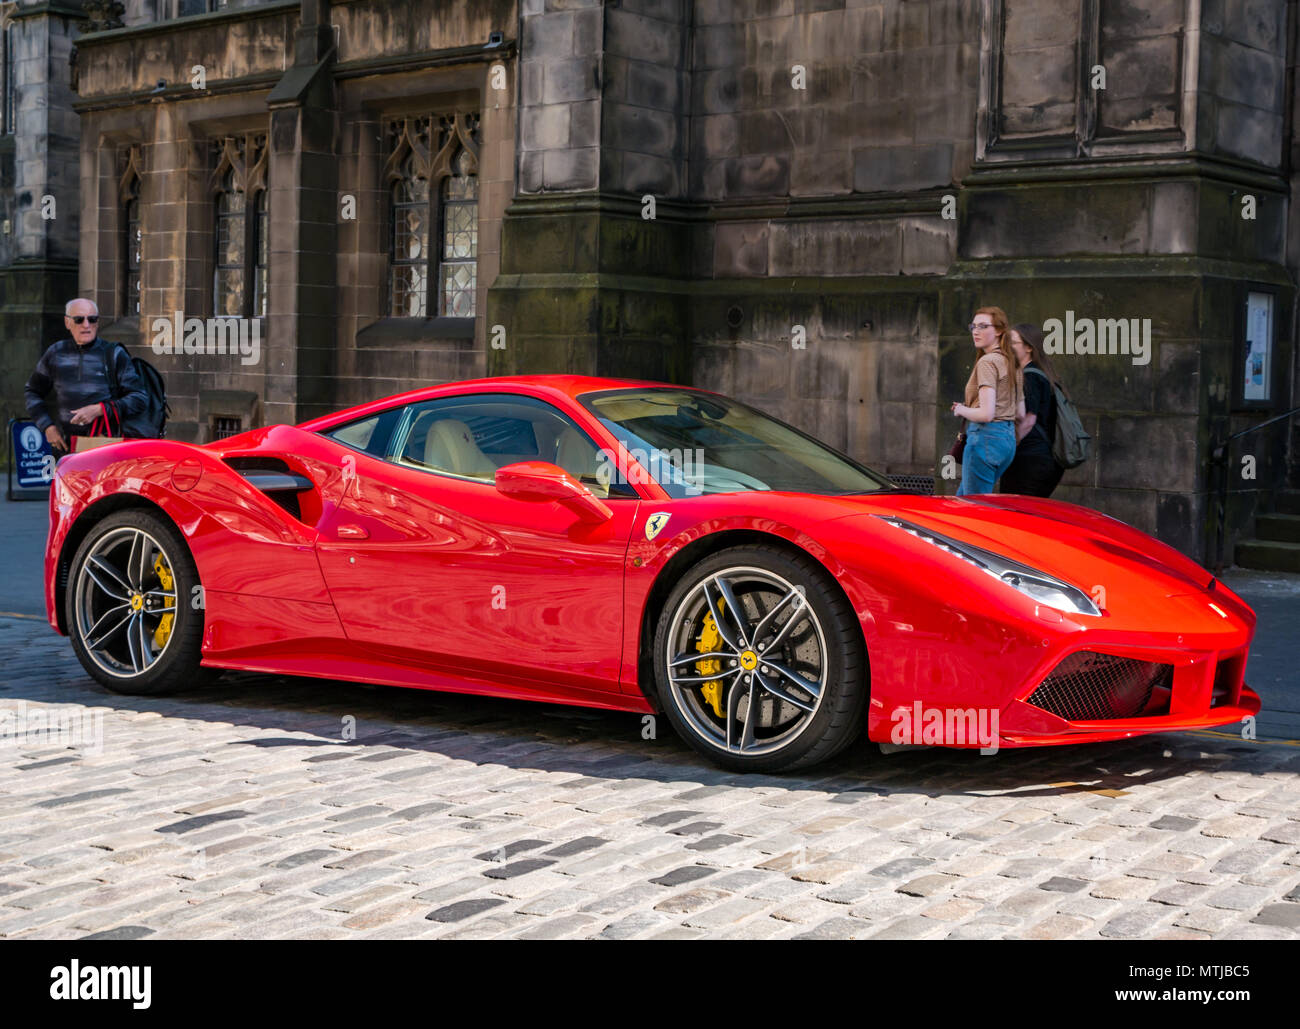 Red Ferrari High Resolution Stock Photography And Images Alamy